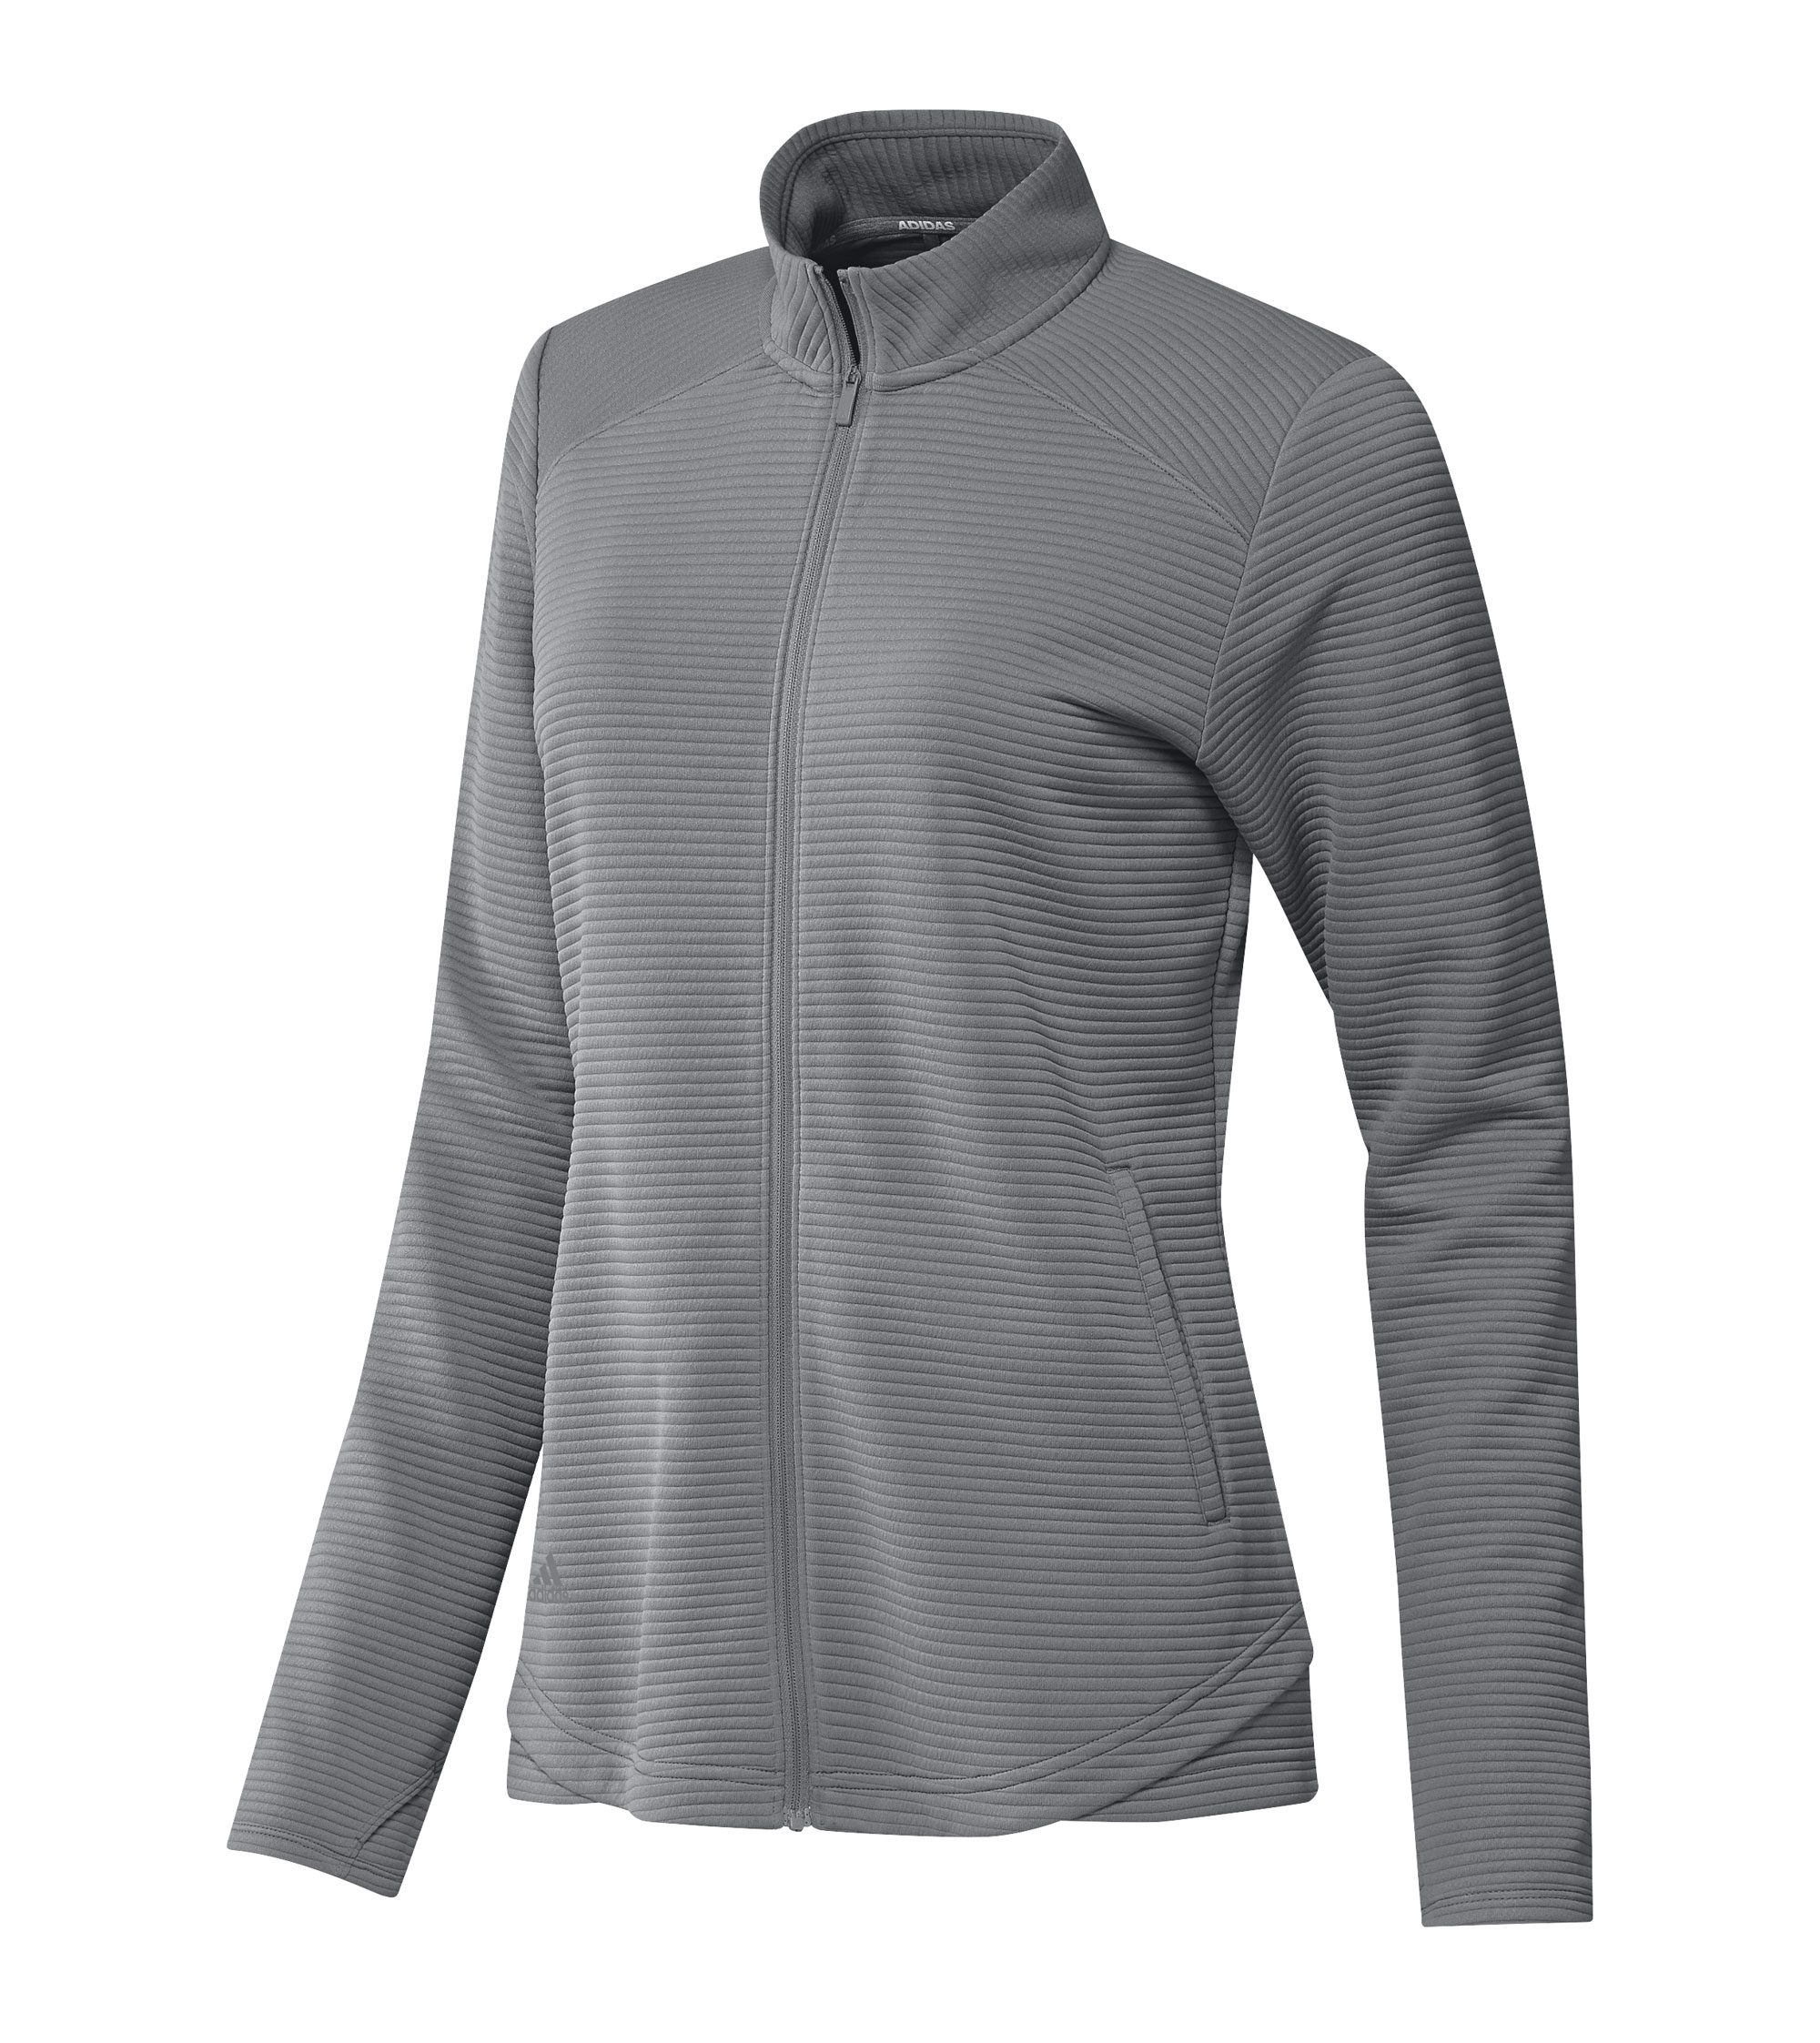 Adidas Womens Lifestyle Textured Full-Zip Jacket